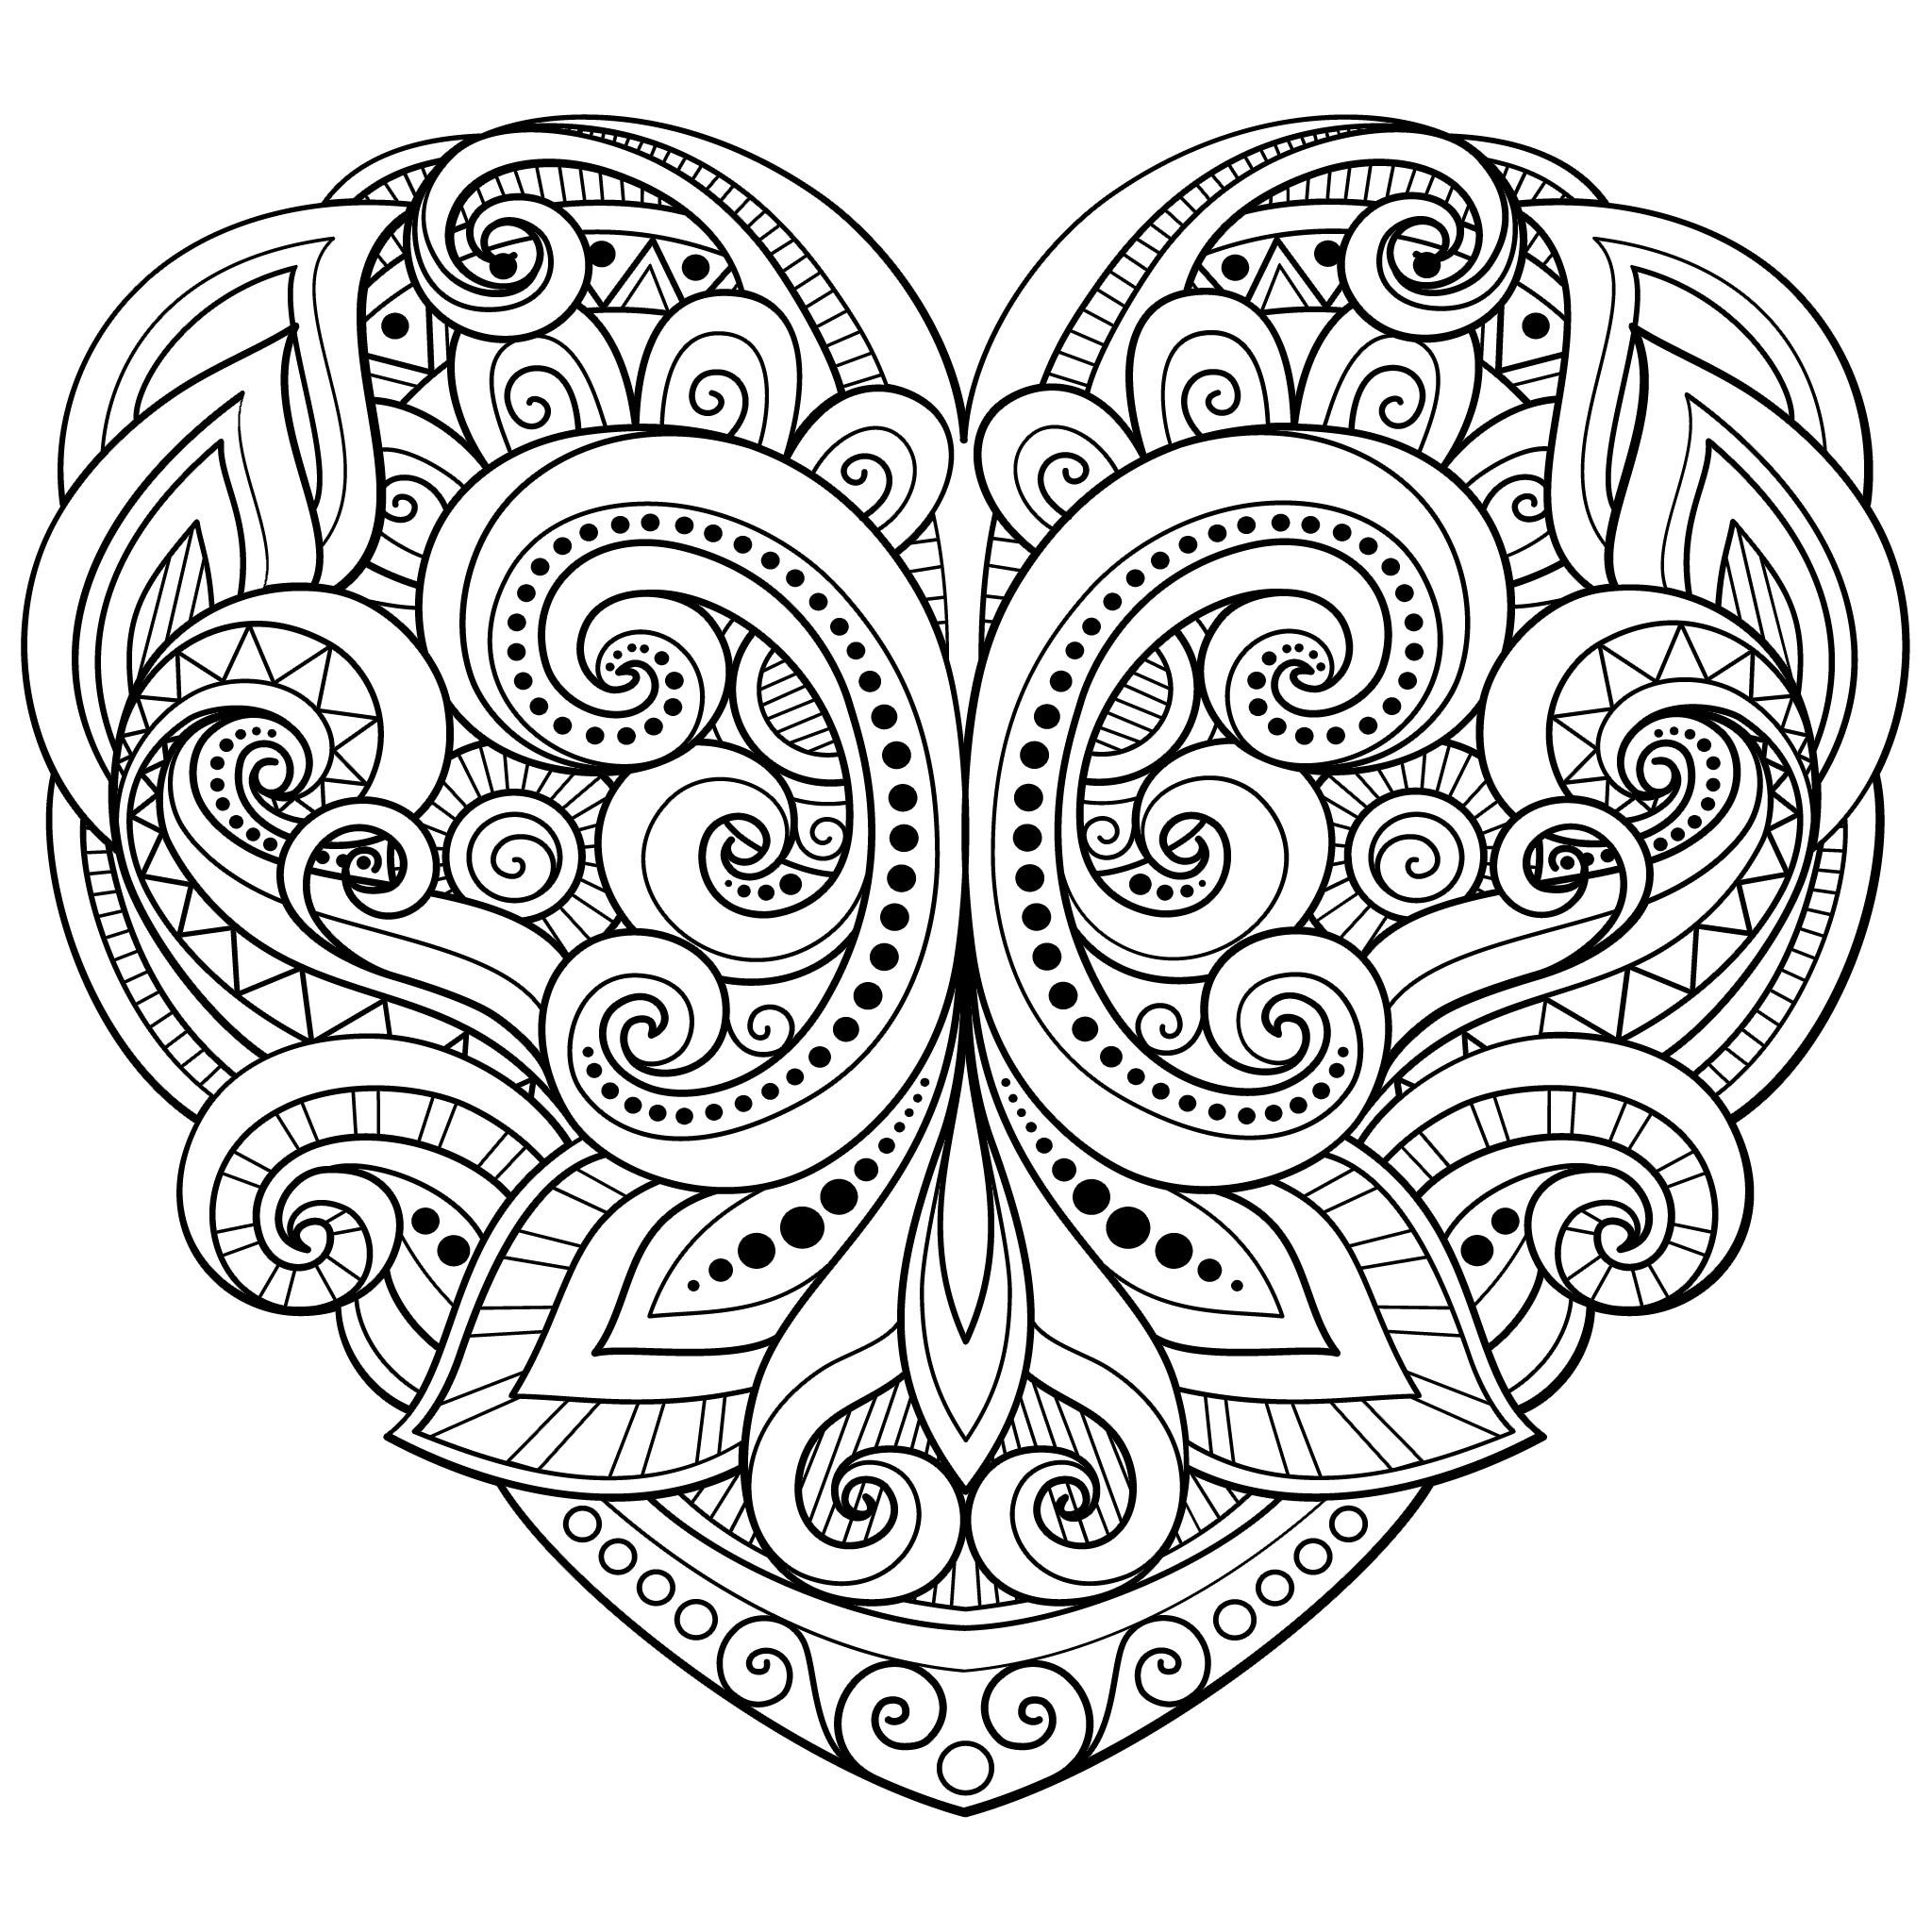 tattoo coloring pages printable flash coloring in the tattoo style coloring book tattoo pages printable coloring